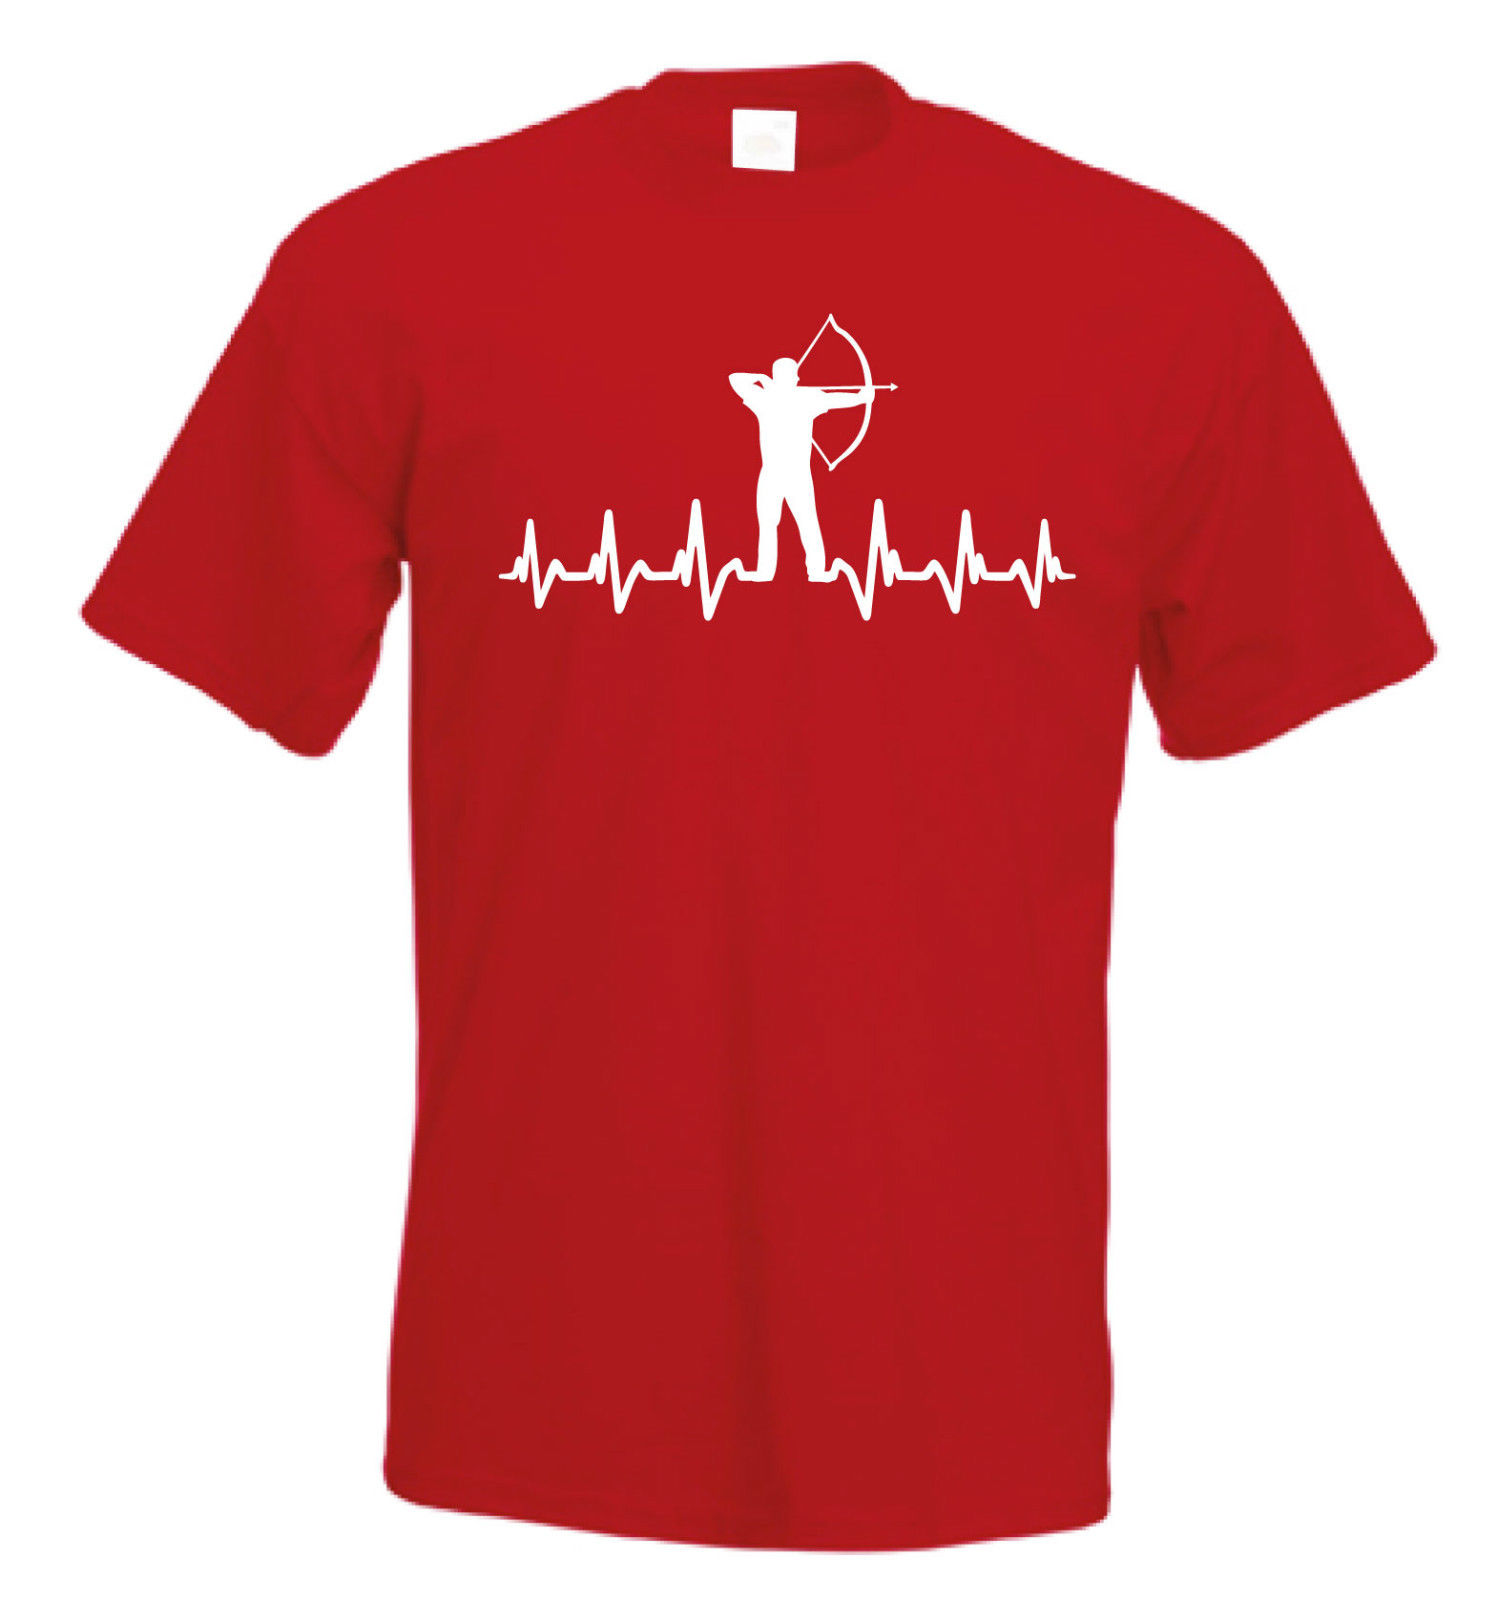 Its In My Archery T Shirt Bow & Arrow T-Shirt FREE UK P&P Good Quality Brand Cotton Shirt Summer Style Cool Shirts Punk Tops